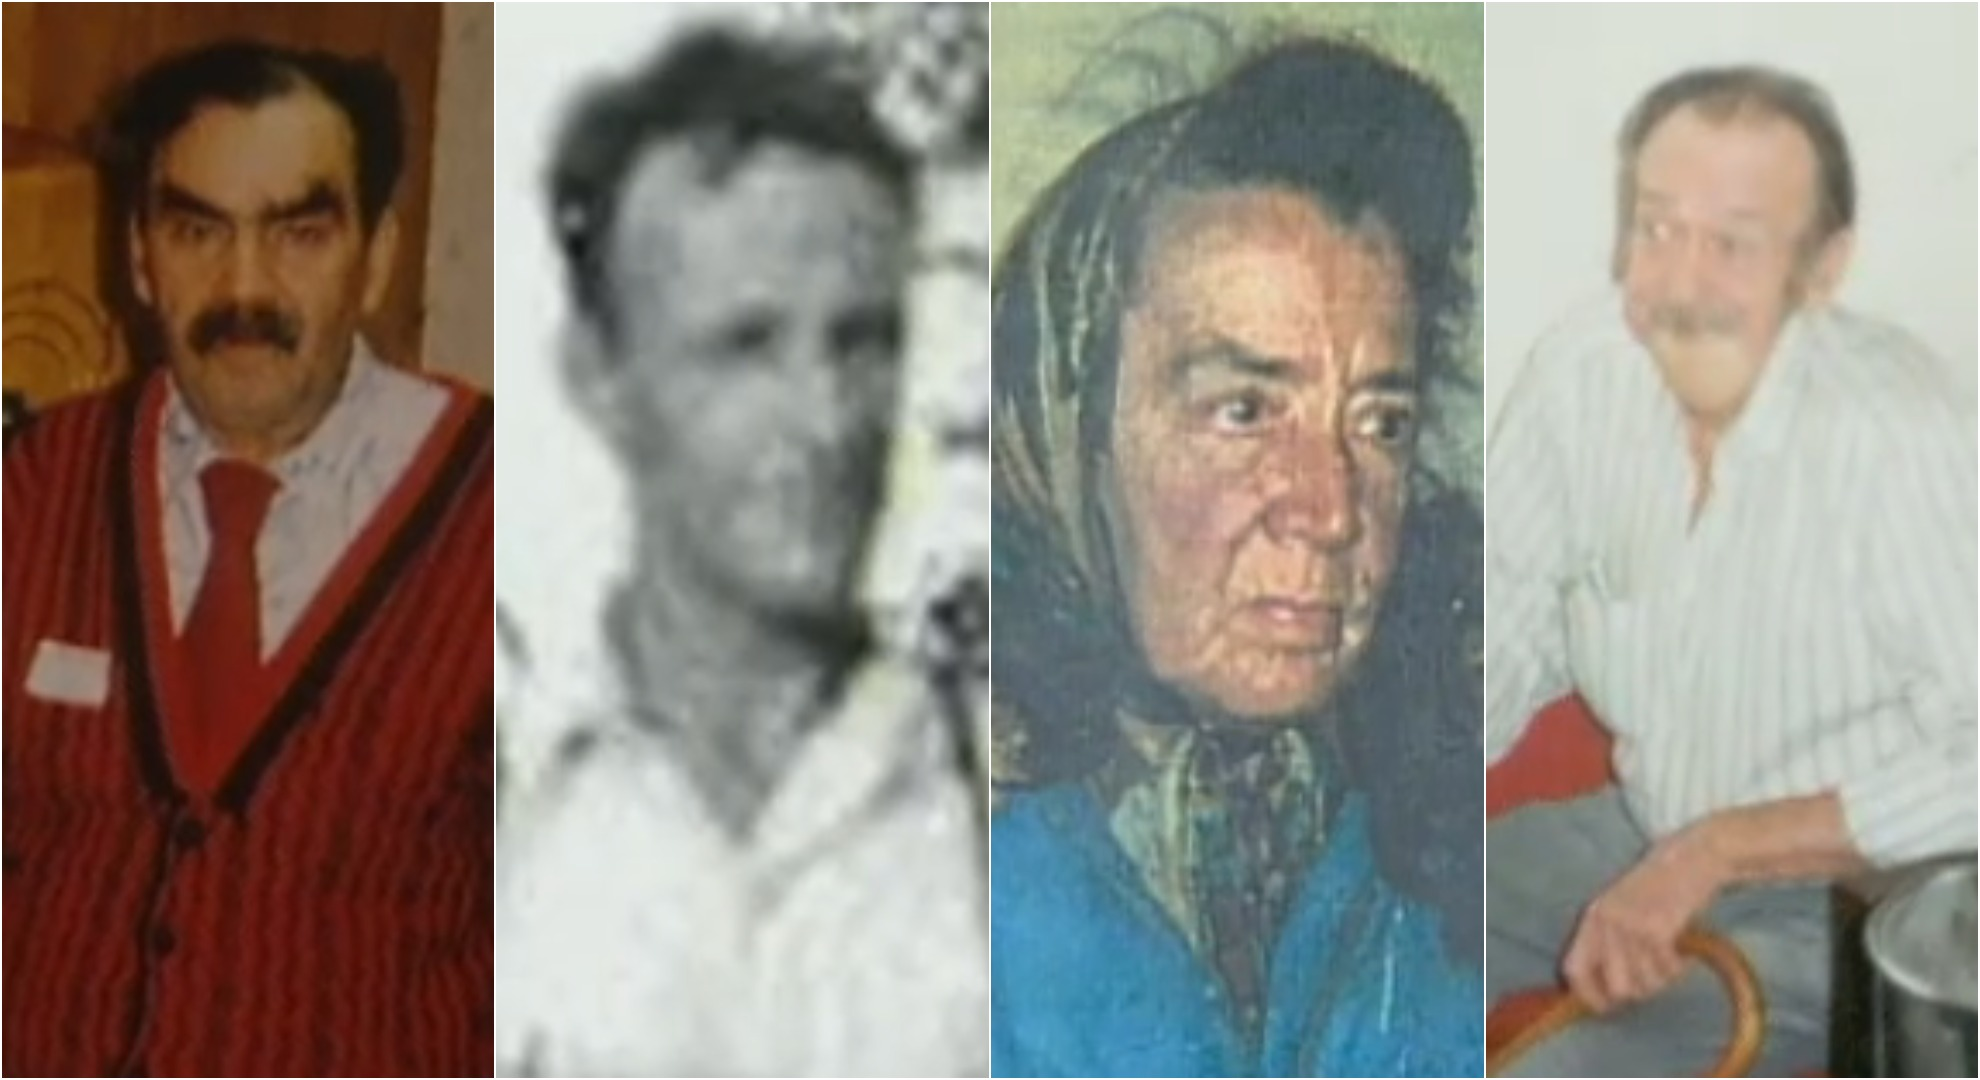 Four seniors missing for decades from Muskoka region